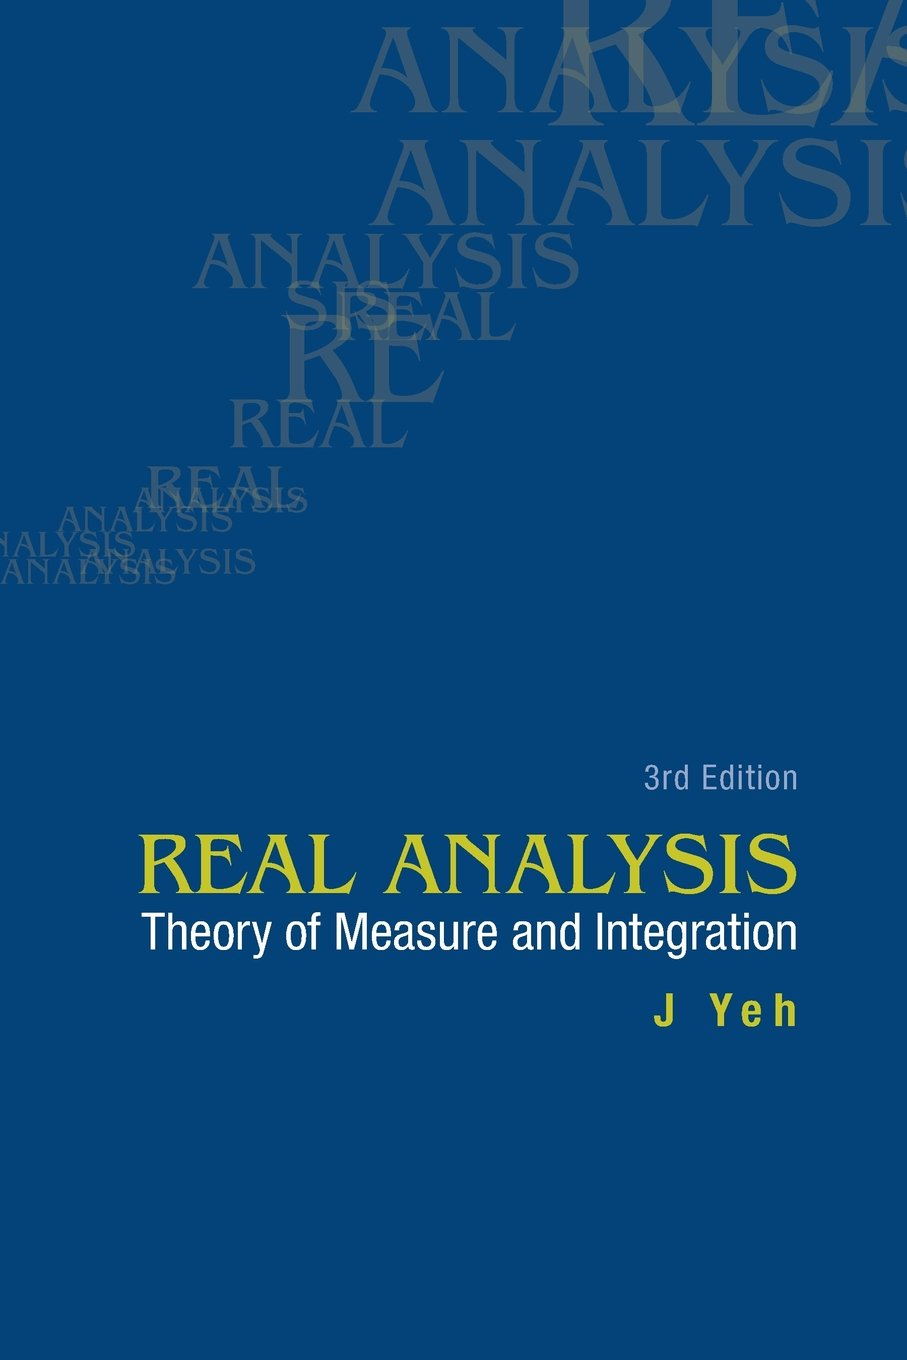 Real Analysis: Theory of Measure and Integration (3rd Edition)